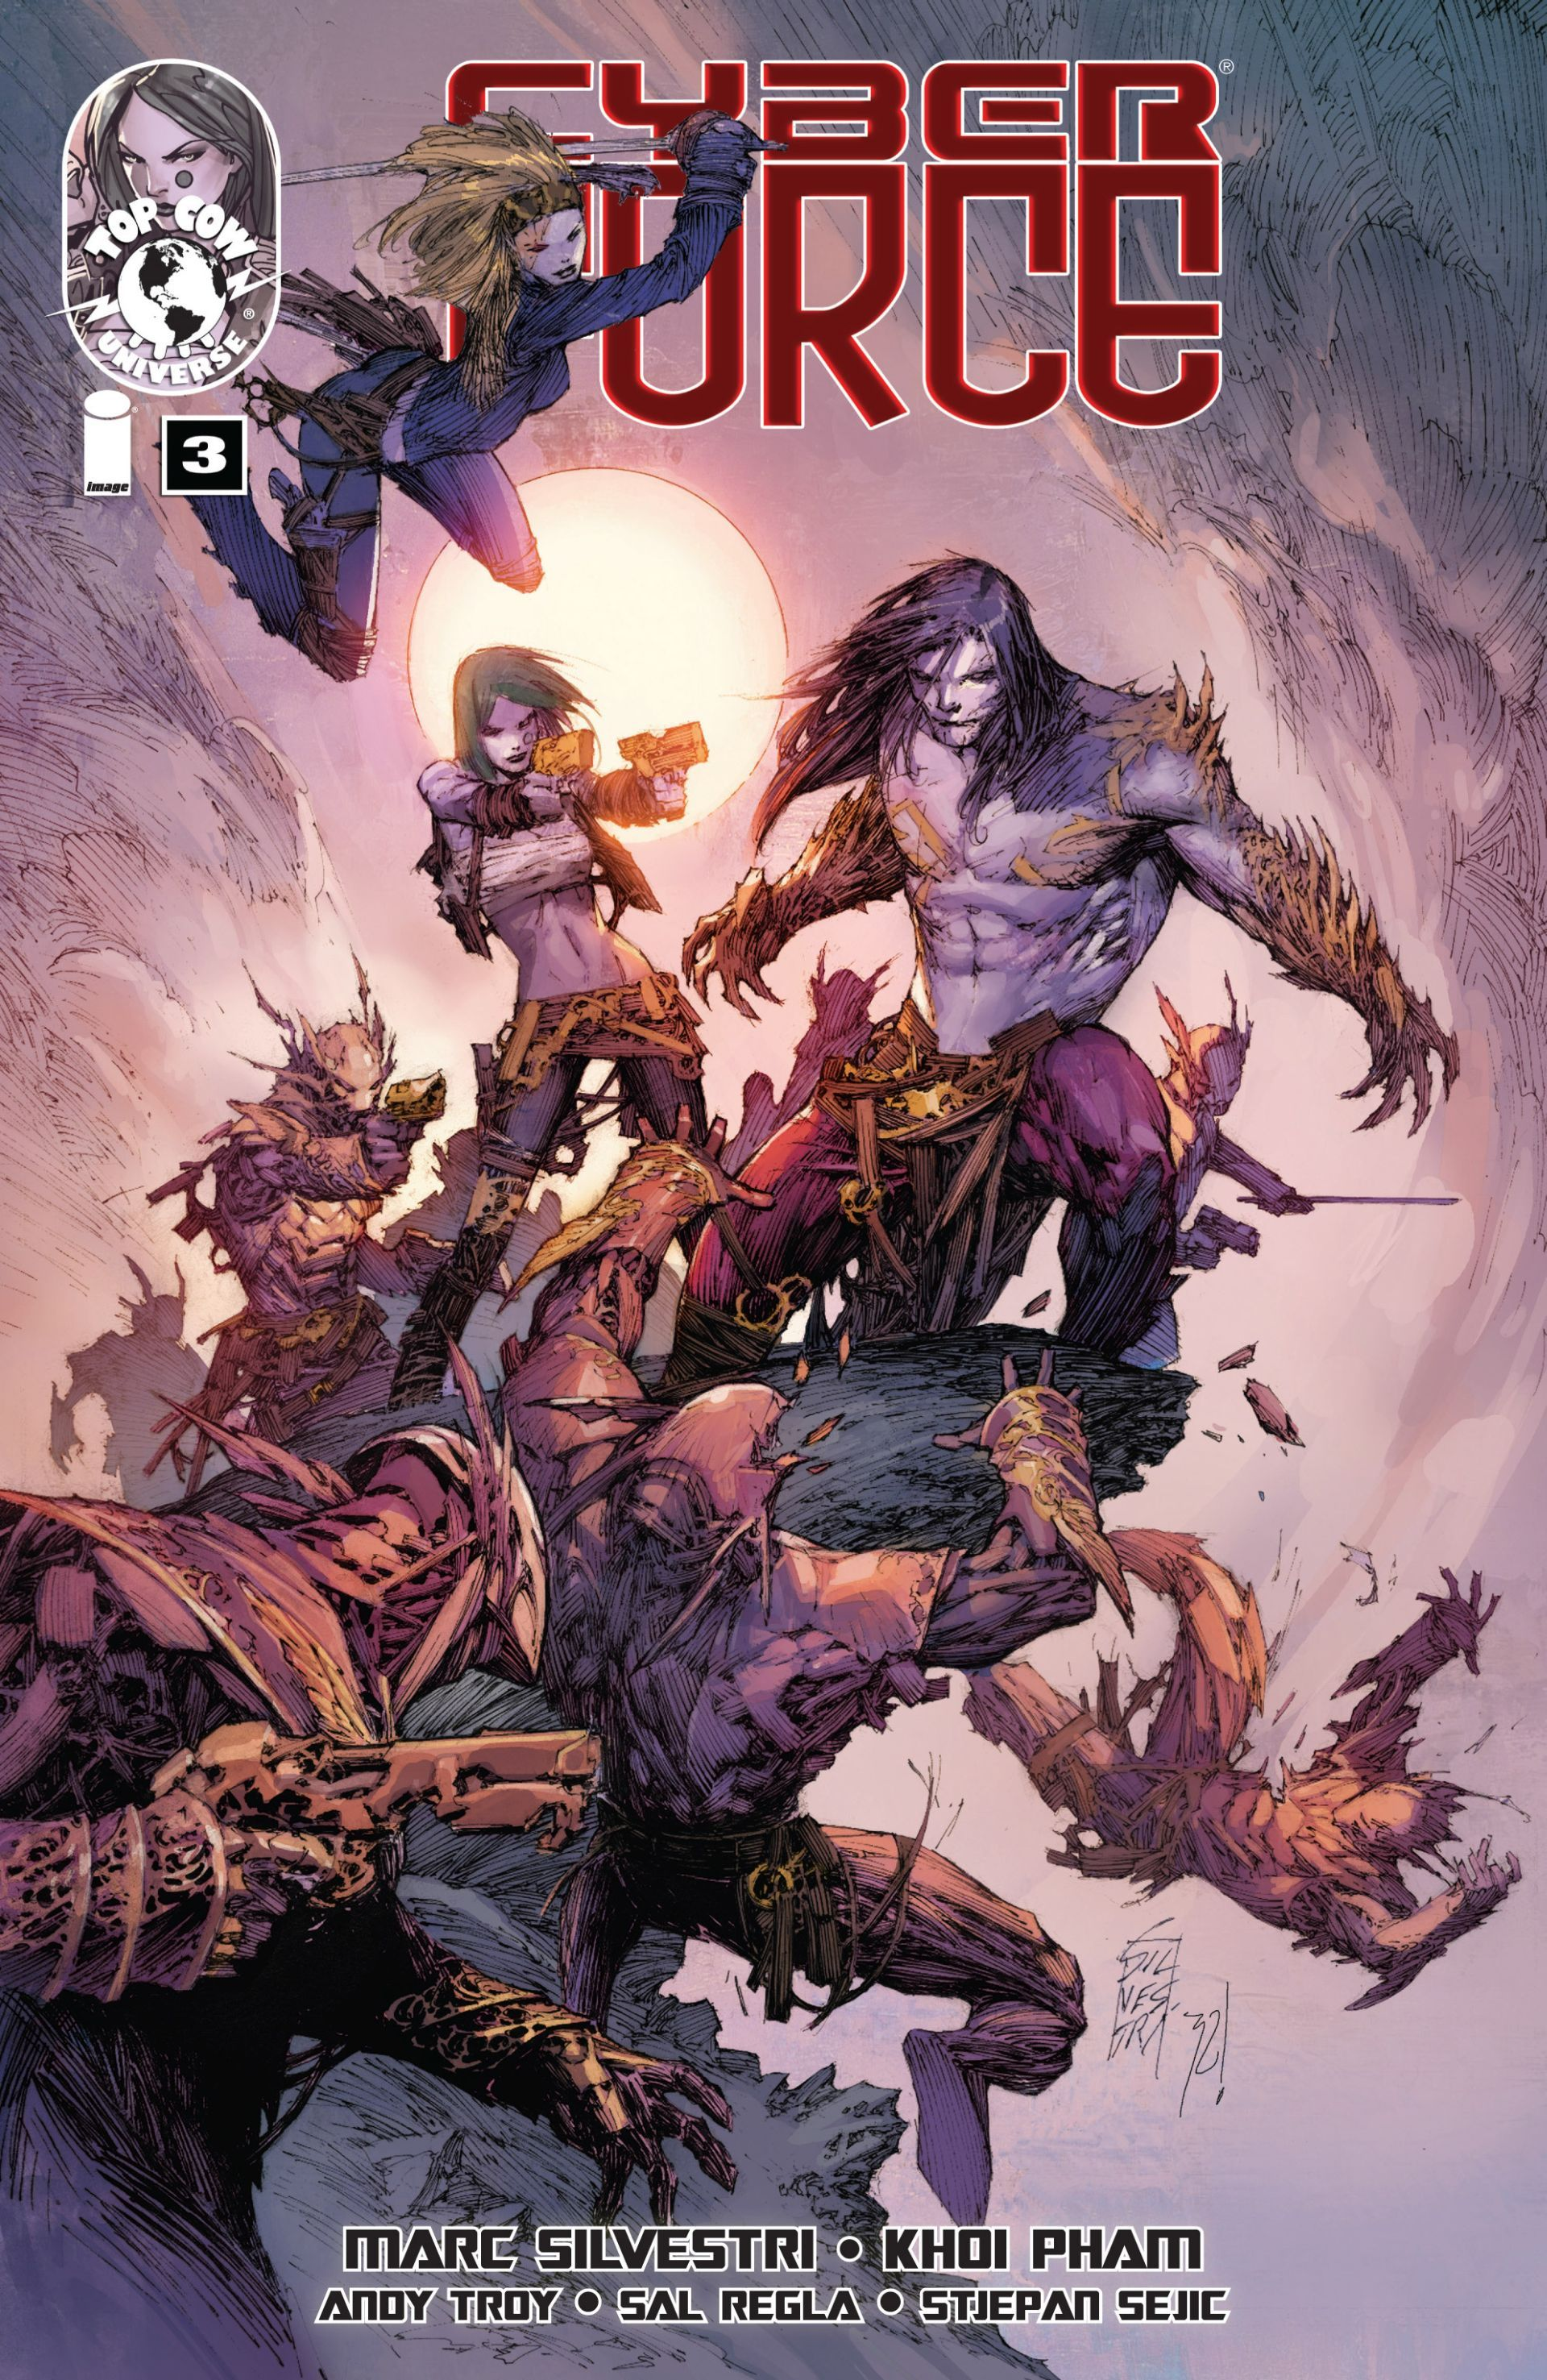 Cyberforce Issue Read Cyberforce Issue ic online in high quality